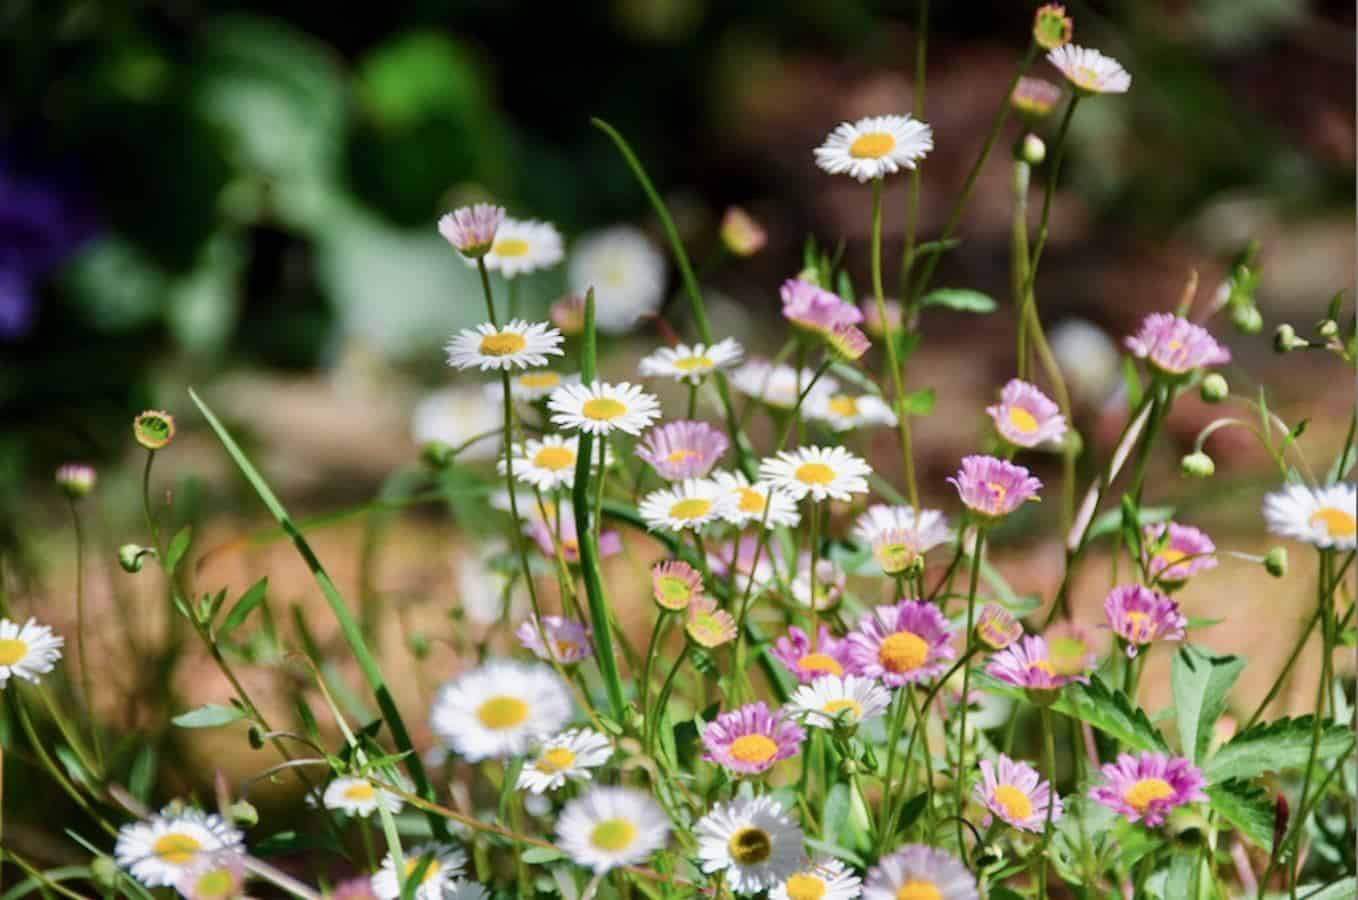 Pink and white daisies with long green stems swaying in a field.